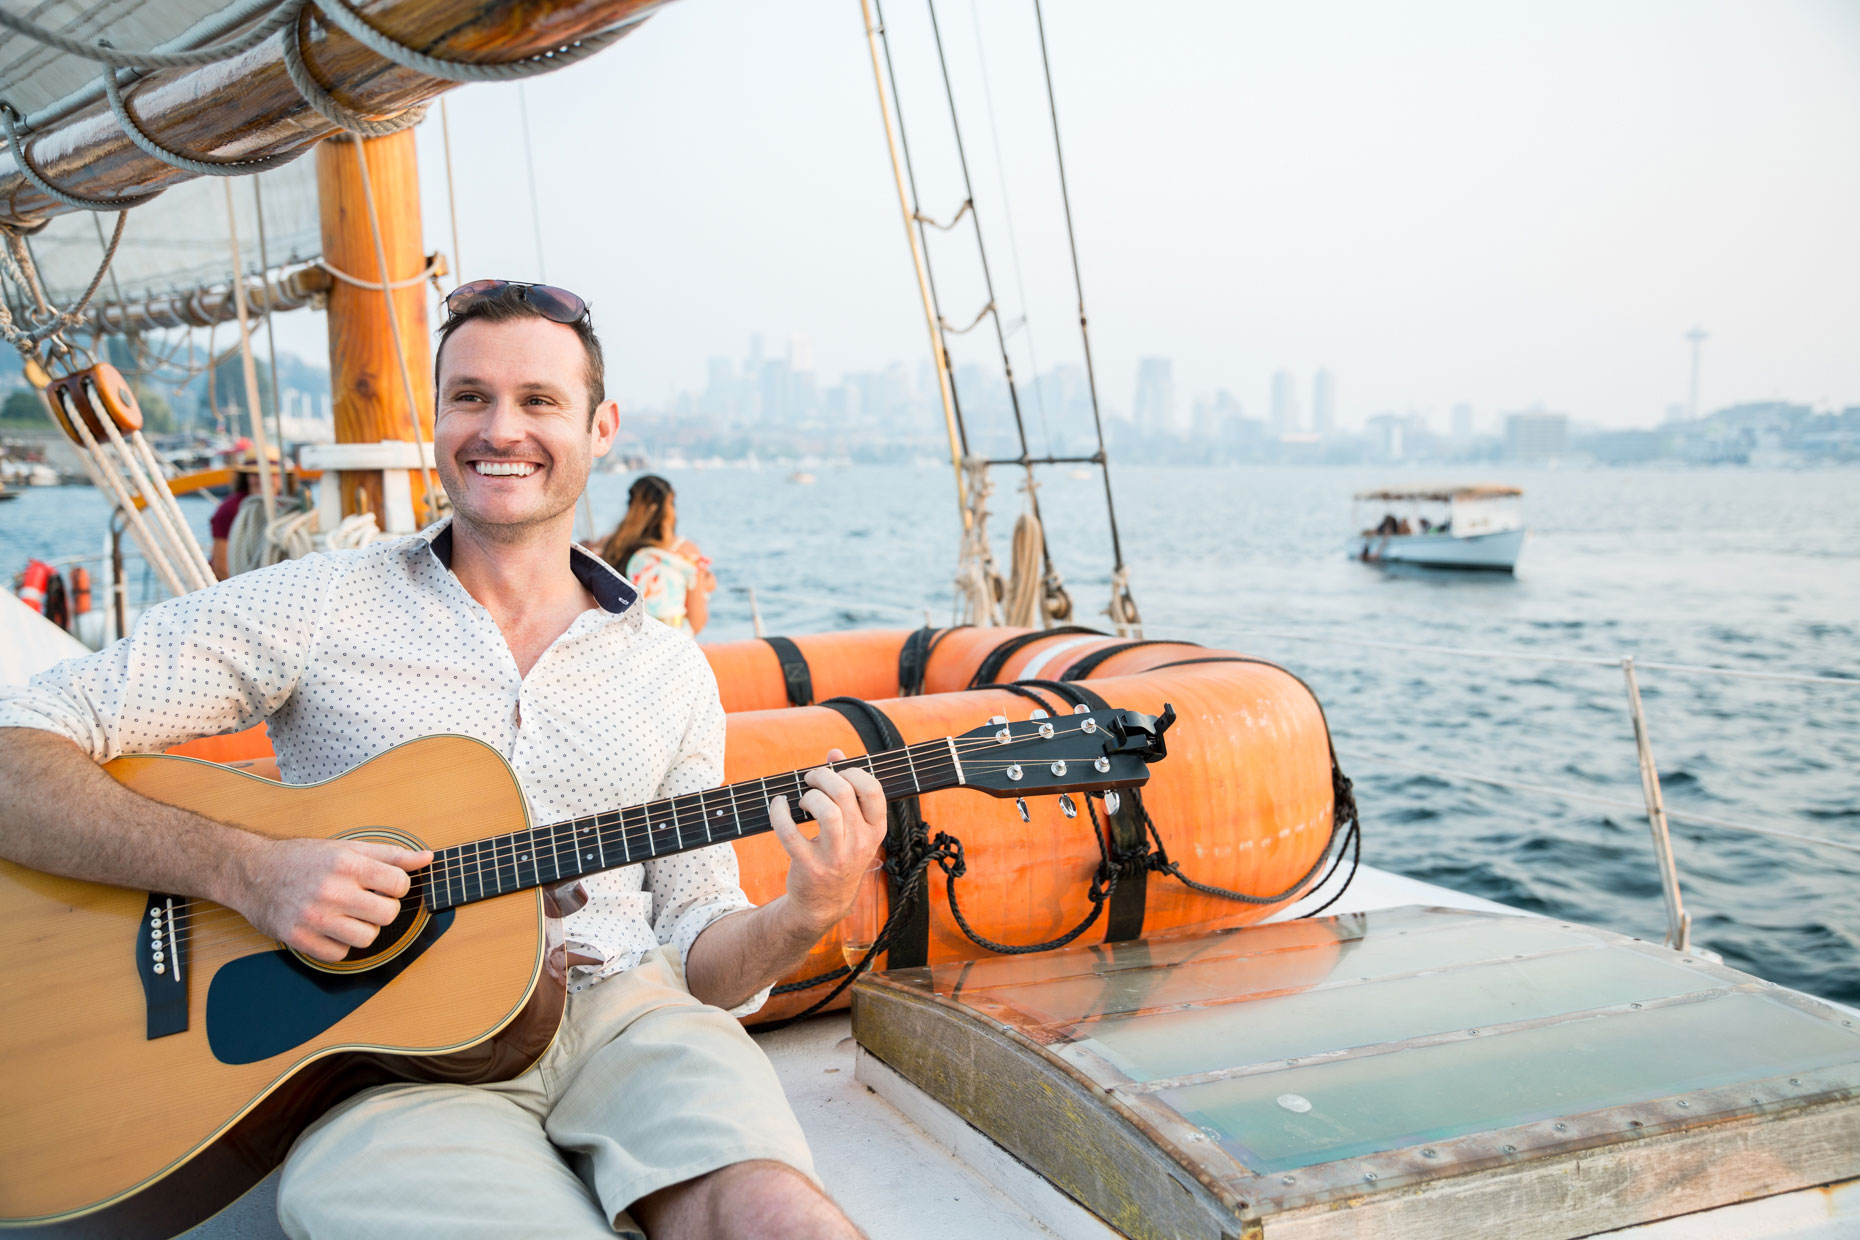 Guitar player on sailboat